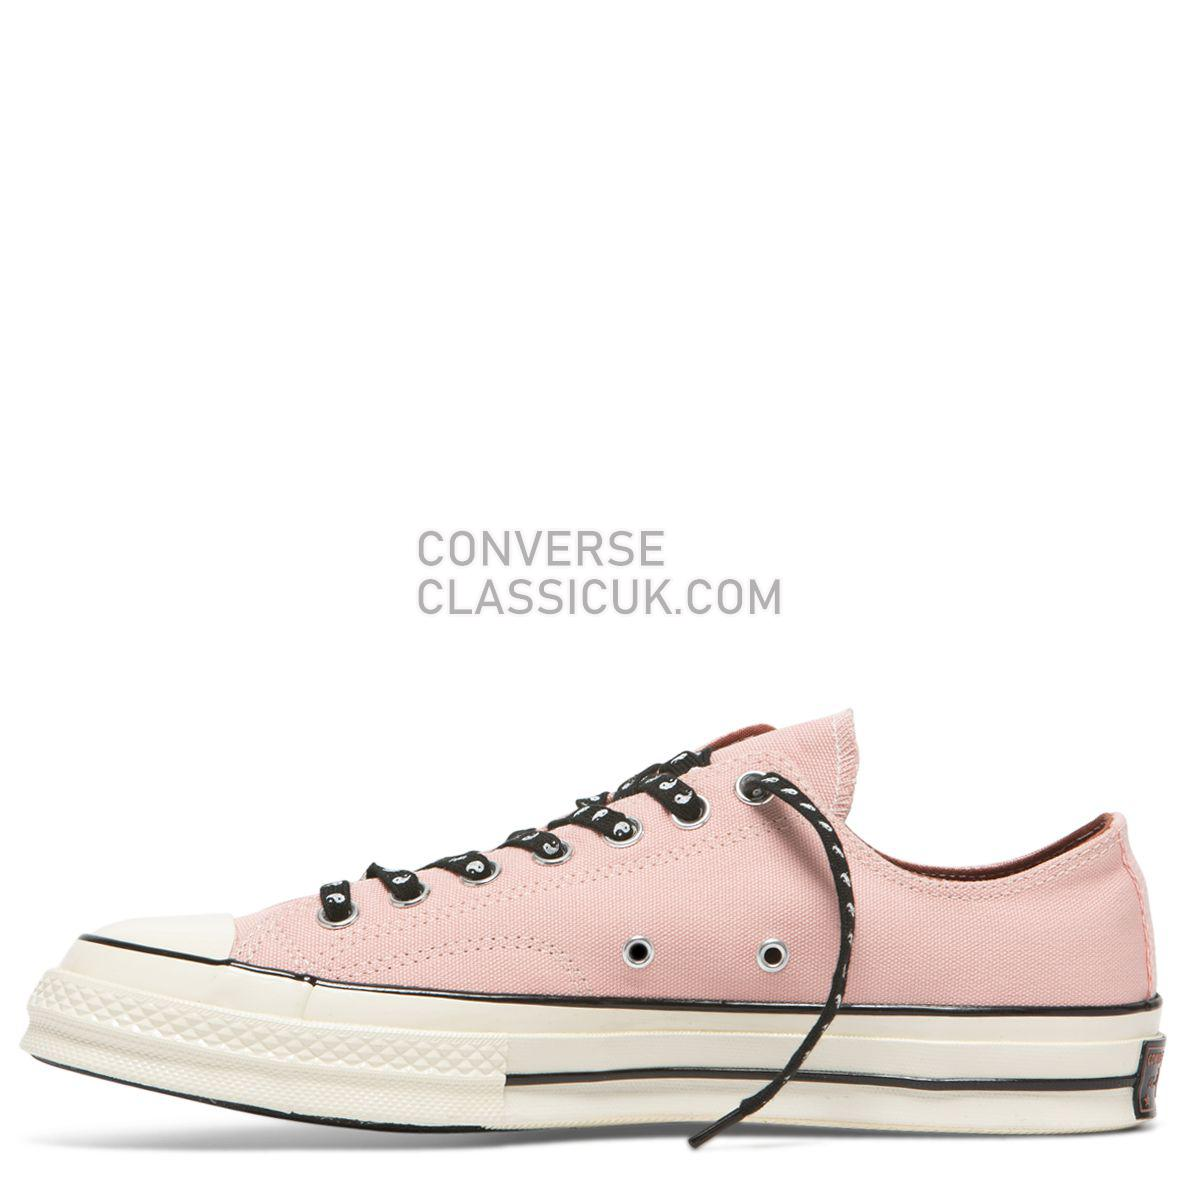 Converse Chuck Taylor All Star 70 Psy-Kicks Low Top Bleached Coral Mens Womens Unisex 164212 Bleached Coral/Dusty Peach/Egret Shoes